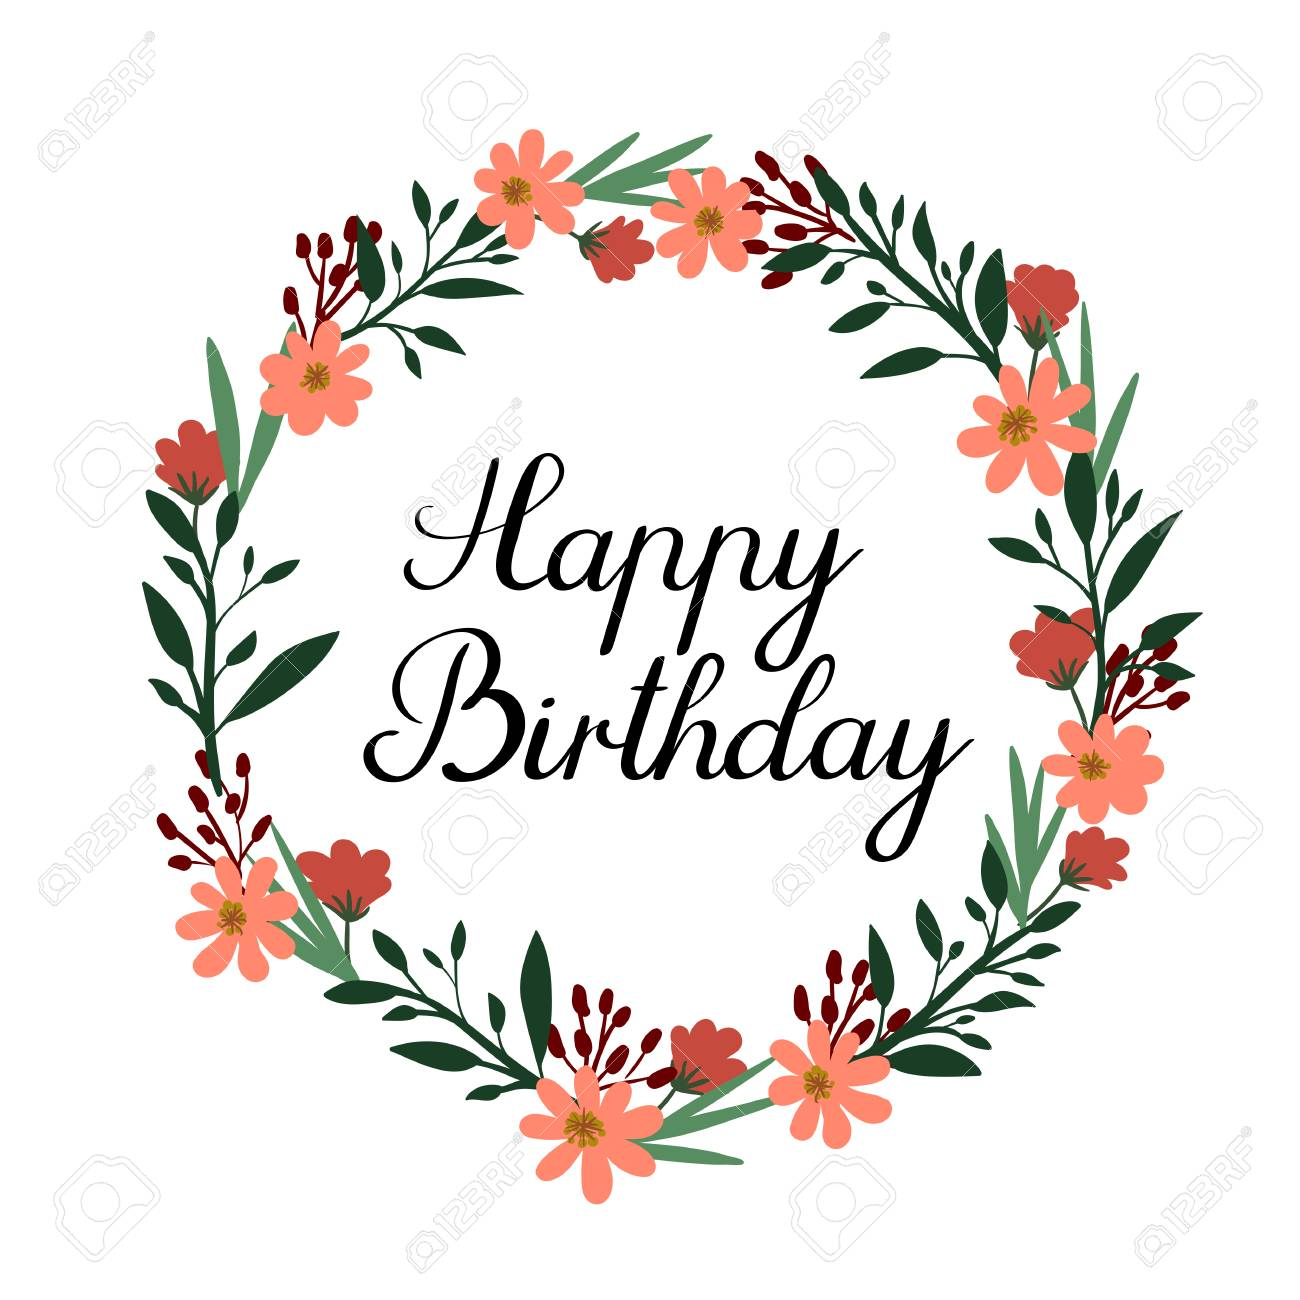 Happy Birthday Hand Lettering Greeting Card Vector Calligraphy Floral Wreath Stock